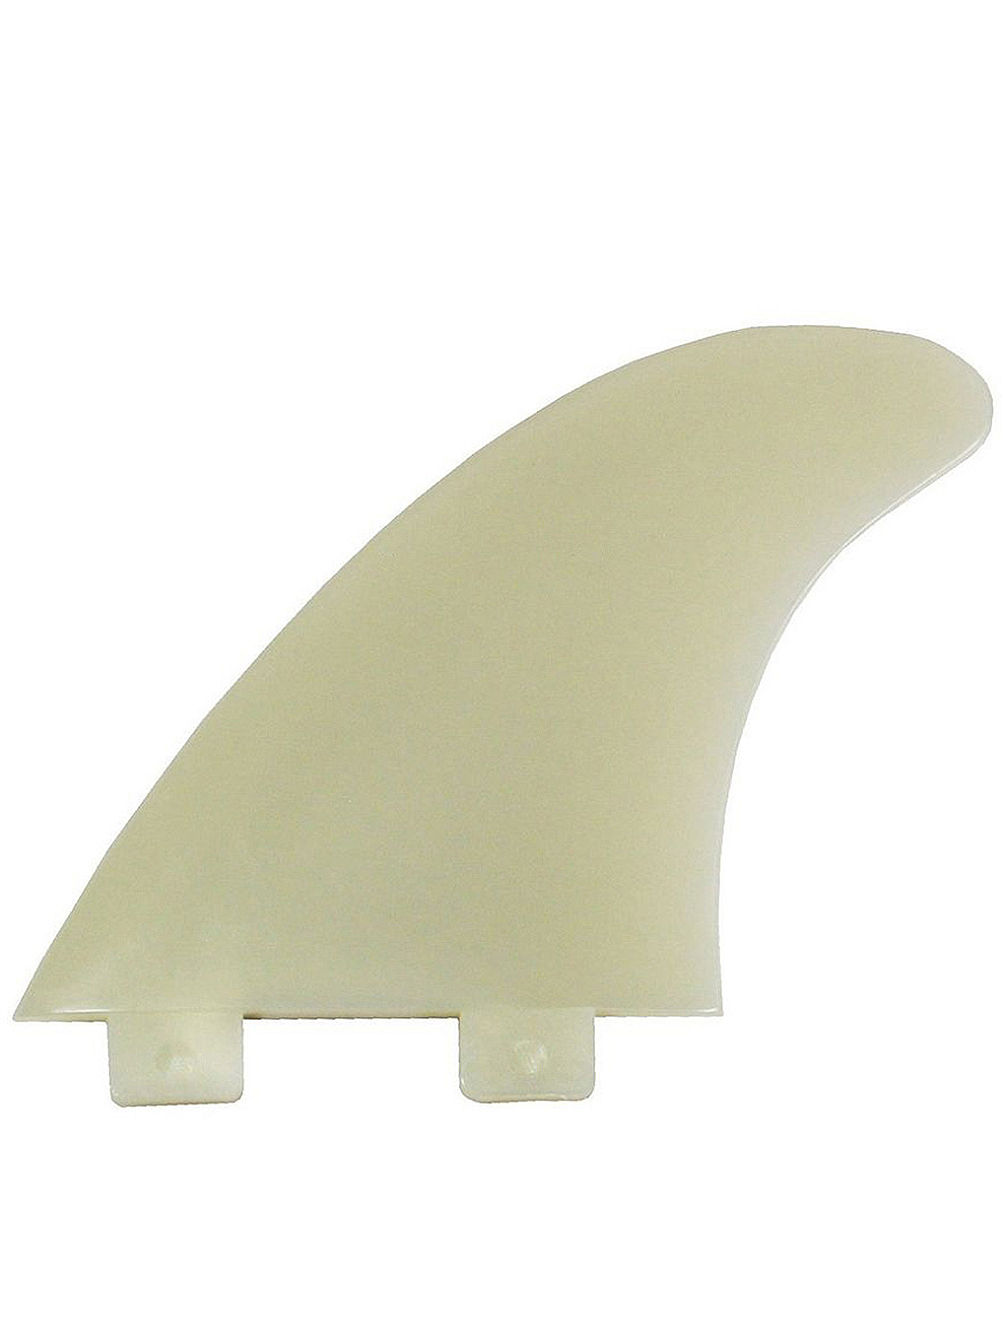 Euro Fins C Model Finne Set